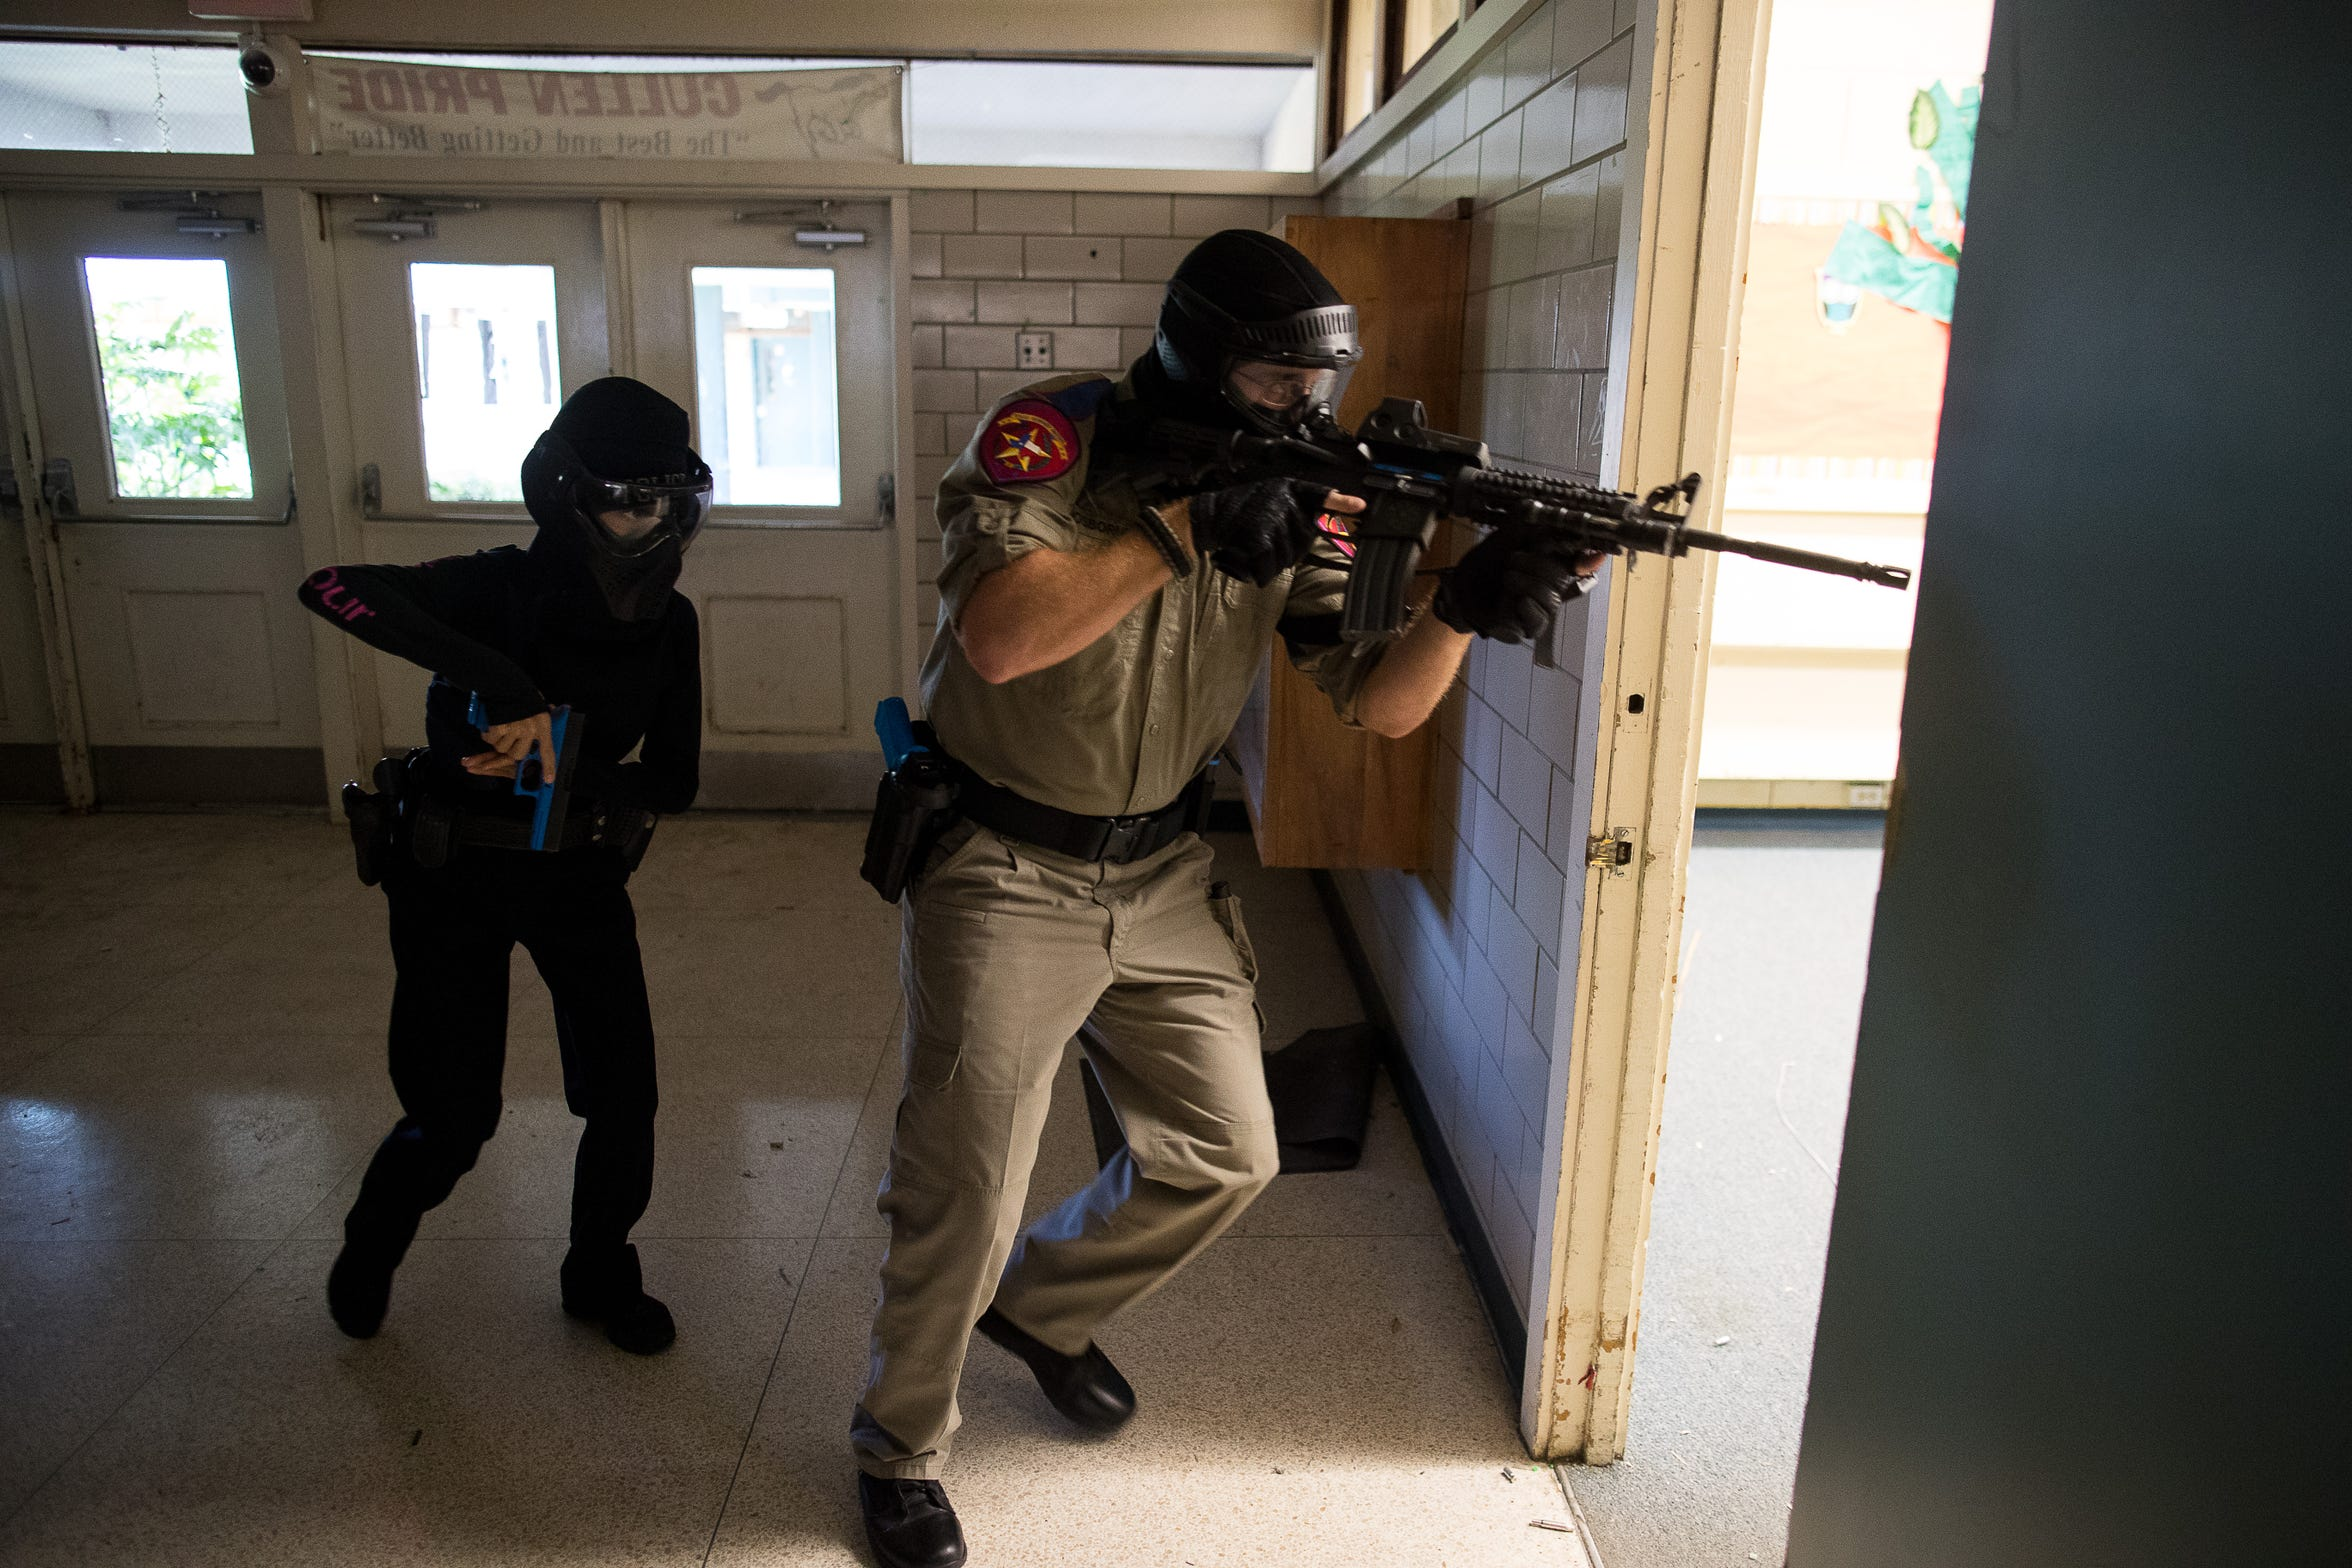 A Texas Department of Public Safety trooper and CCISD police officer enter a room during an active-shooter drill at the old Cullen Middle School.